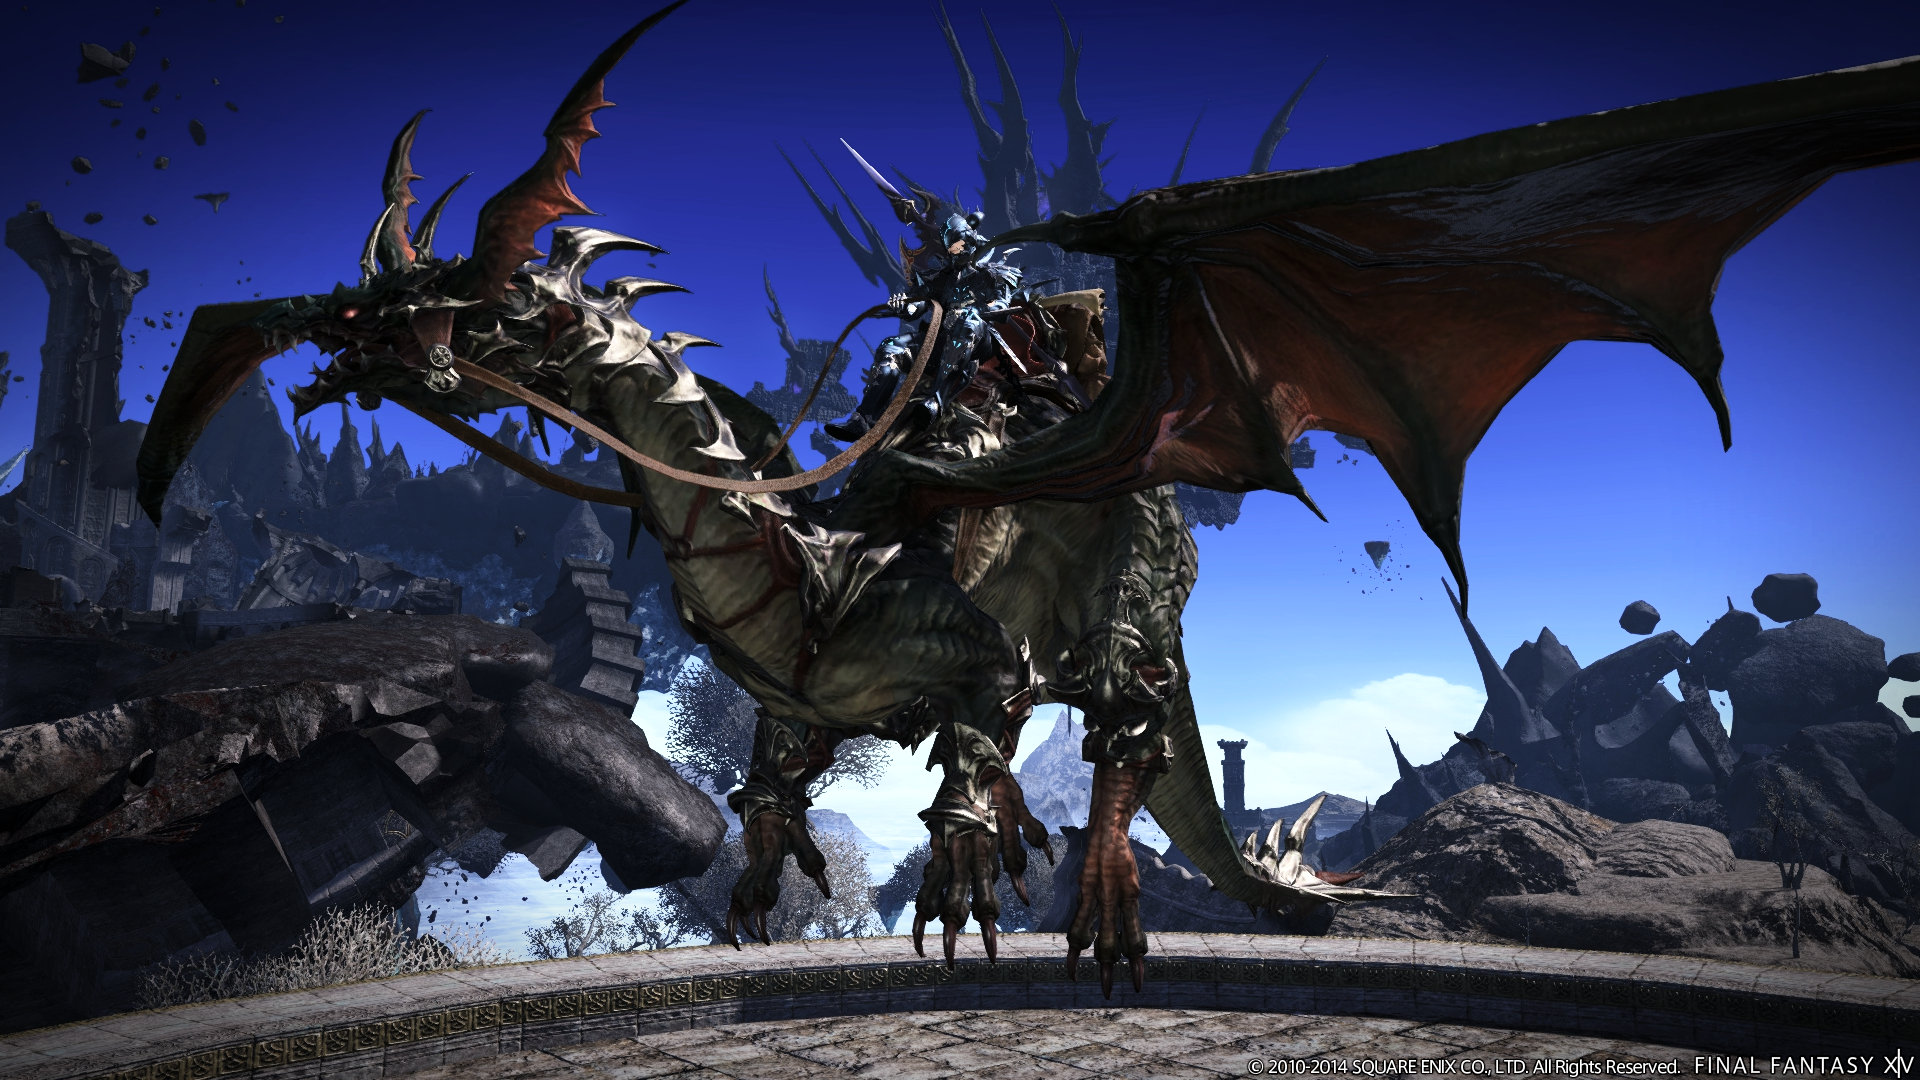 Final Fantasy XIV: A Realm Reborn Game | PS4 - PlayStation